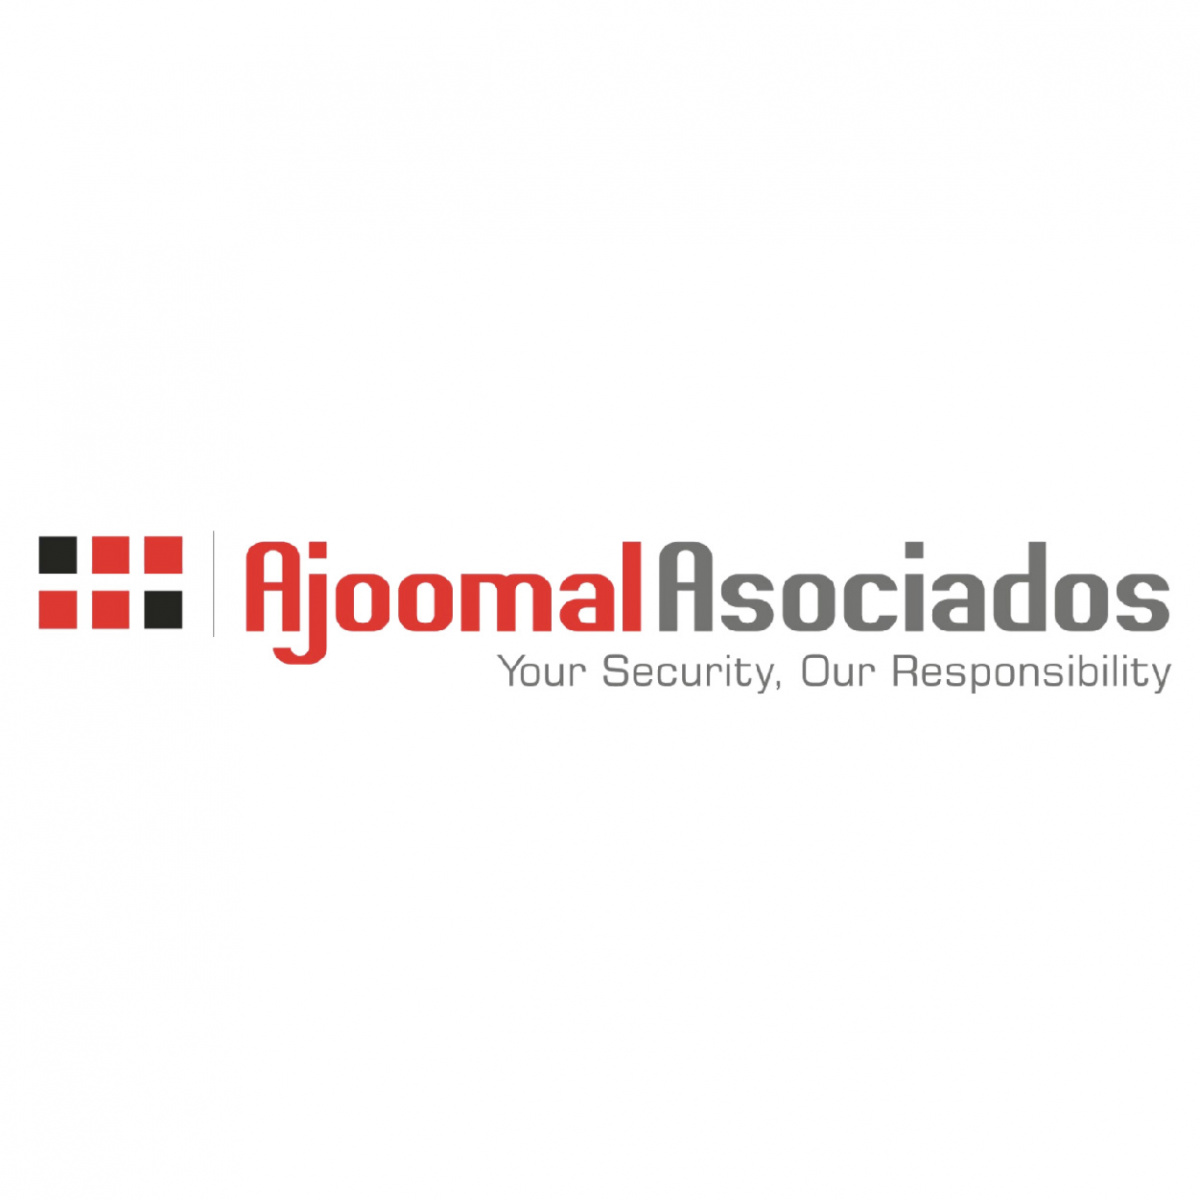 SecureAge Partner Ajoomal Asociados